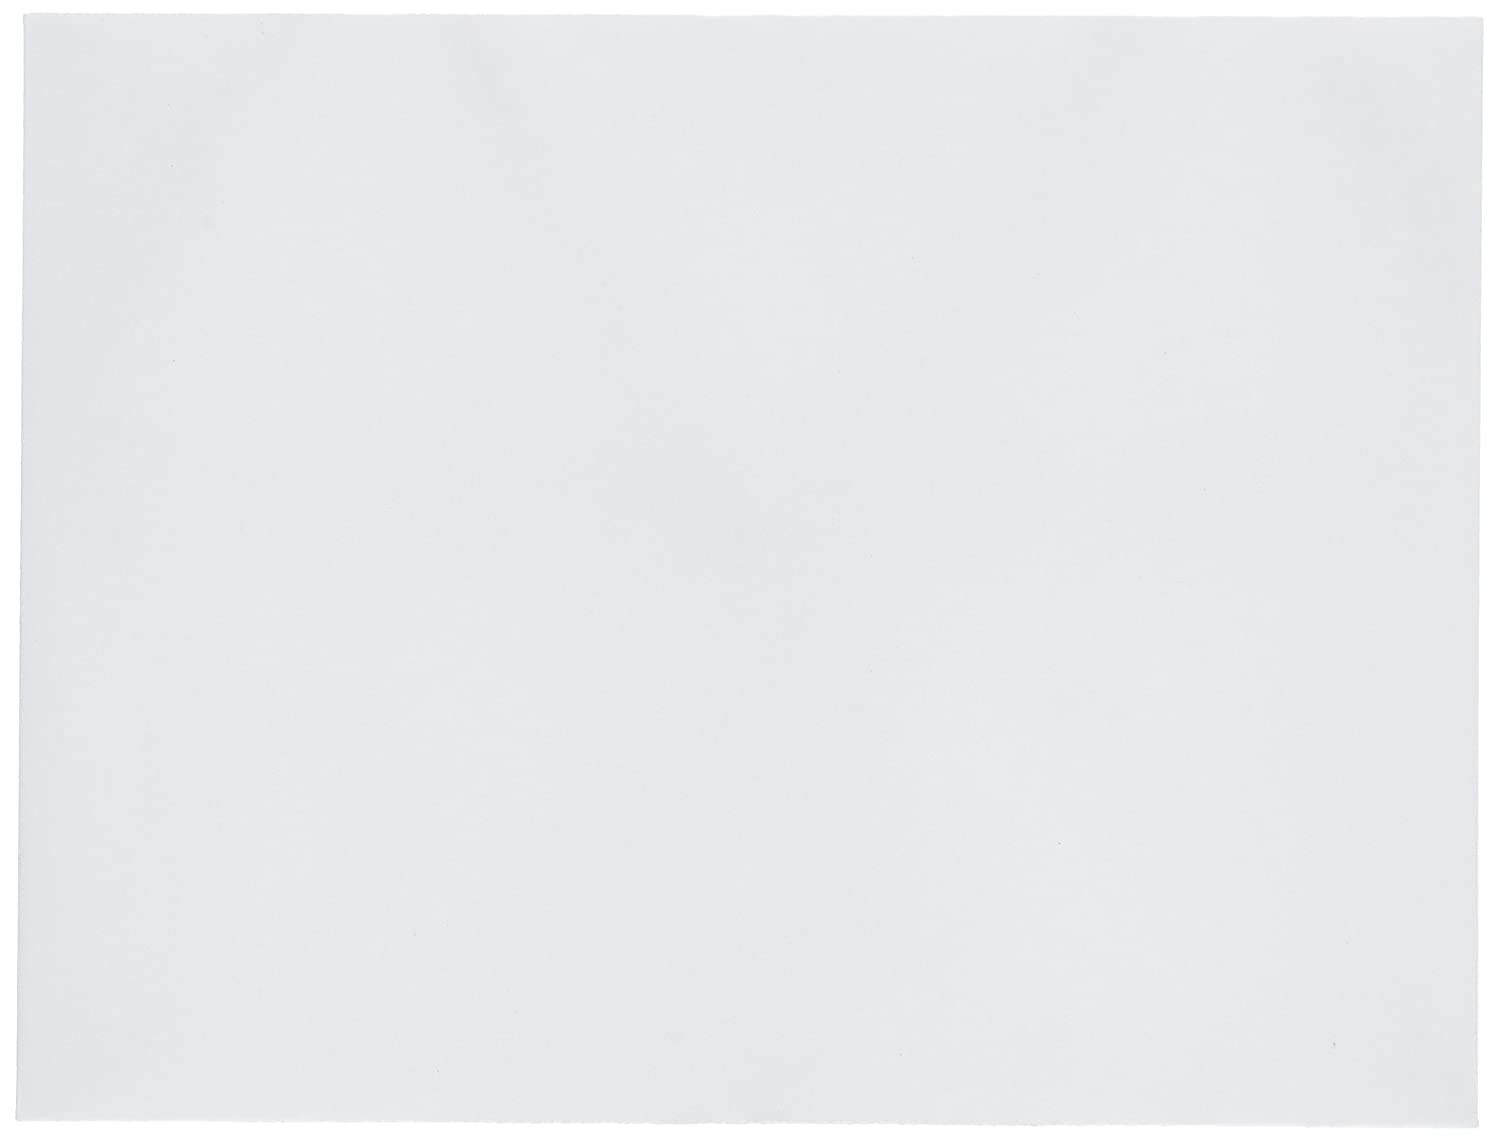 "250 White A2 Envelopes - 5.75"" x 4.375"" - Square Flap"